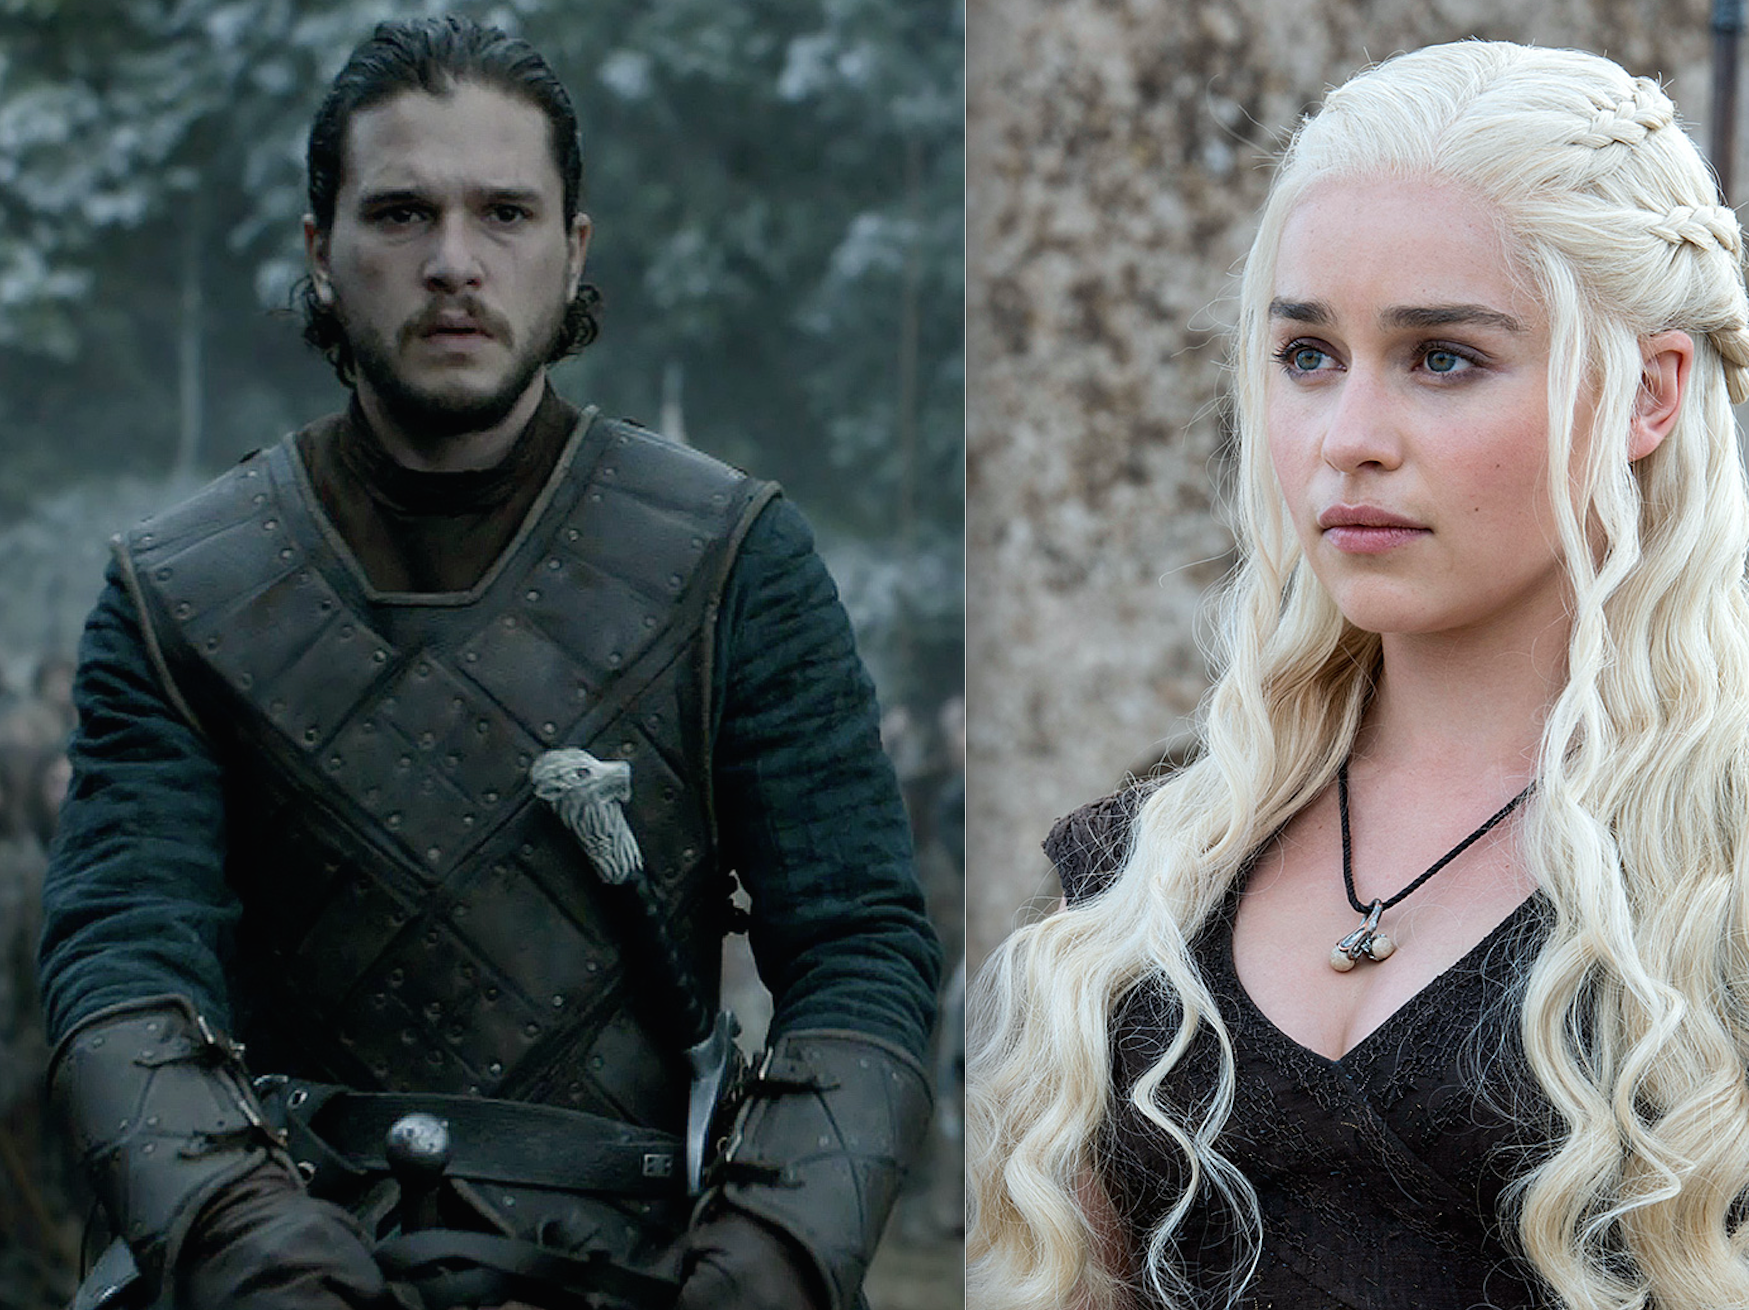 Jon and Daenerys Could Be the Night's King and Queen on 'GoT'